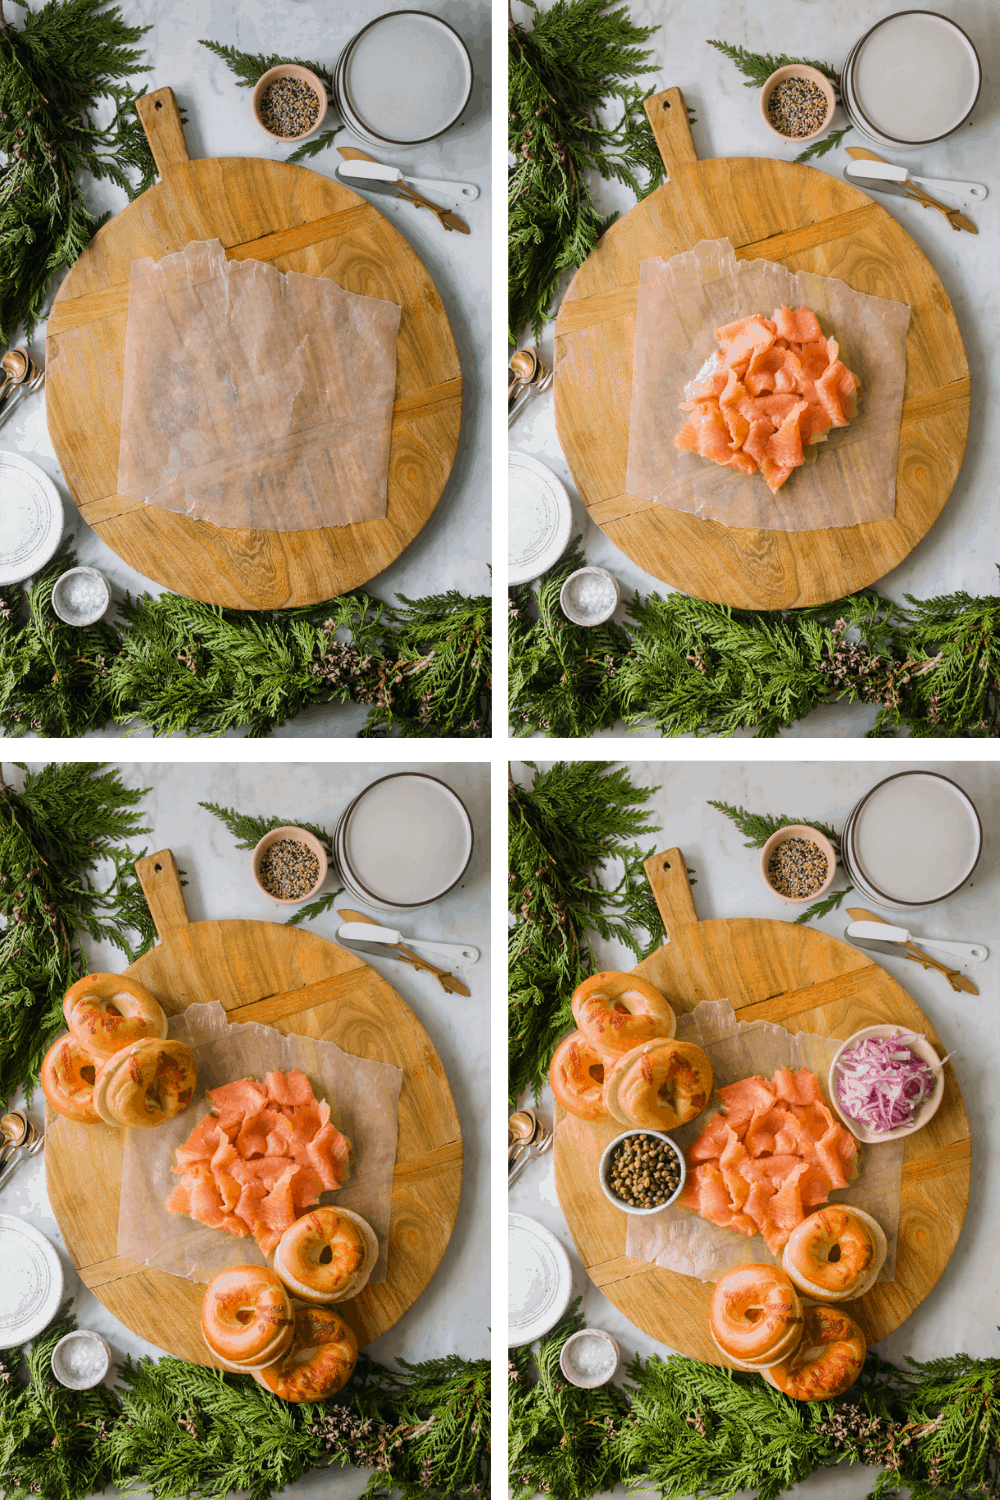 4 images of putting a lox and bagels on a wooden board